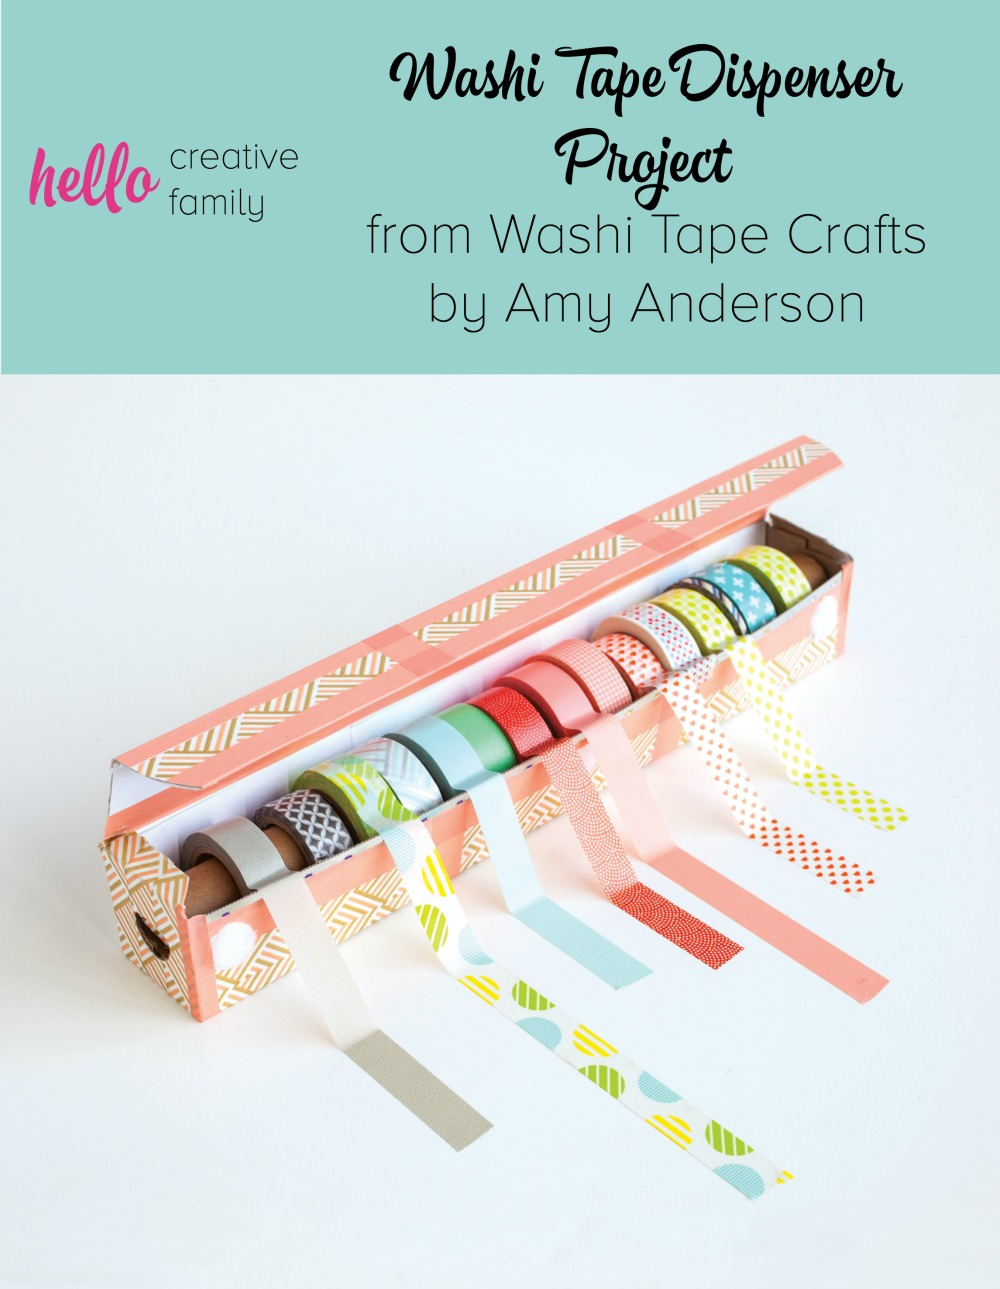 Washi Tape Crafts Easy Diy Washi Tape Dispenser Project From Washi Tape Crafts.